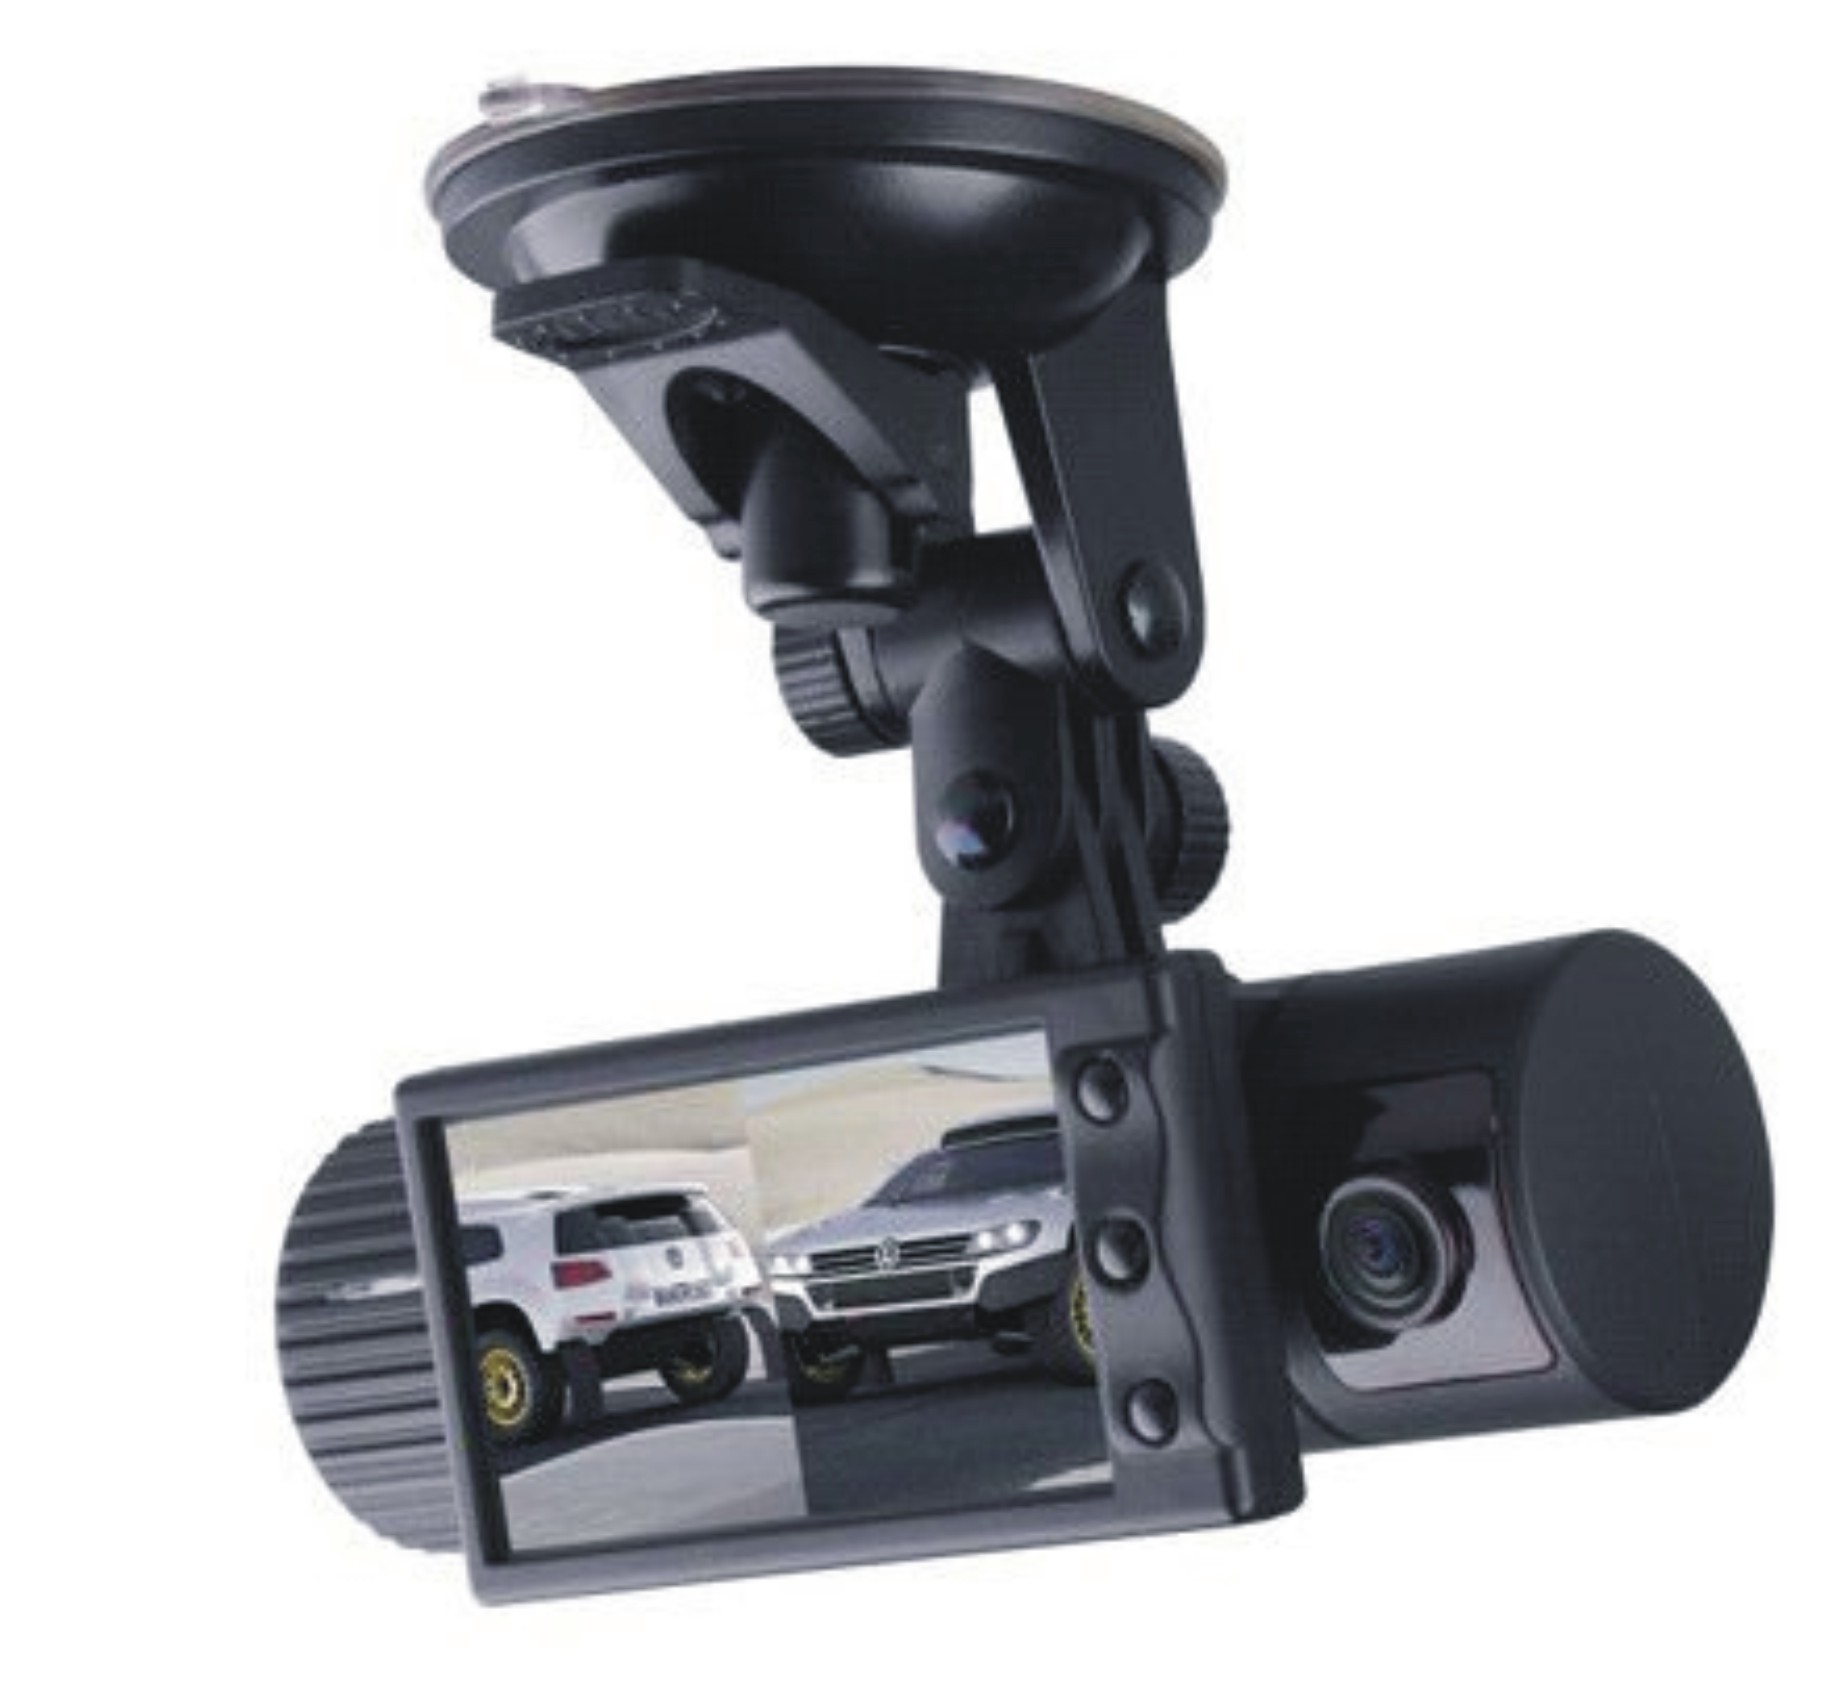 Dual Lens Dashboard Camera In Karnal